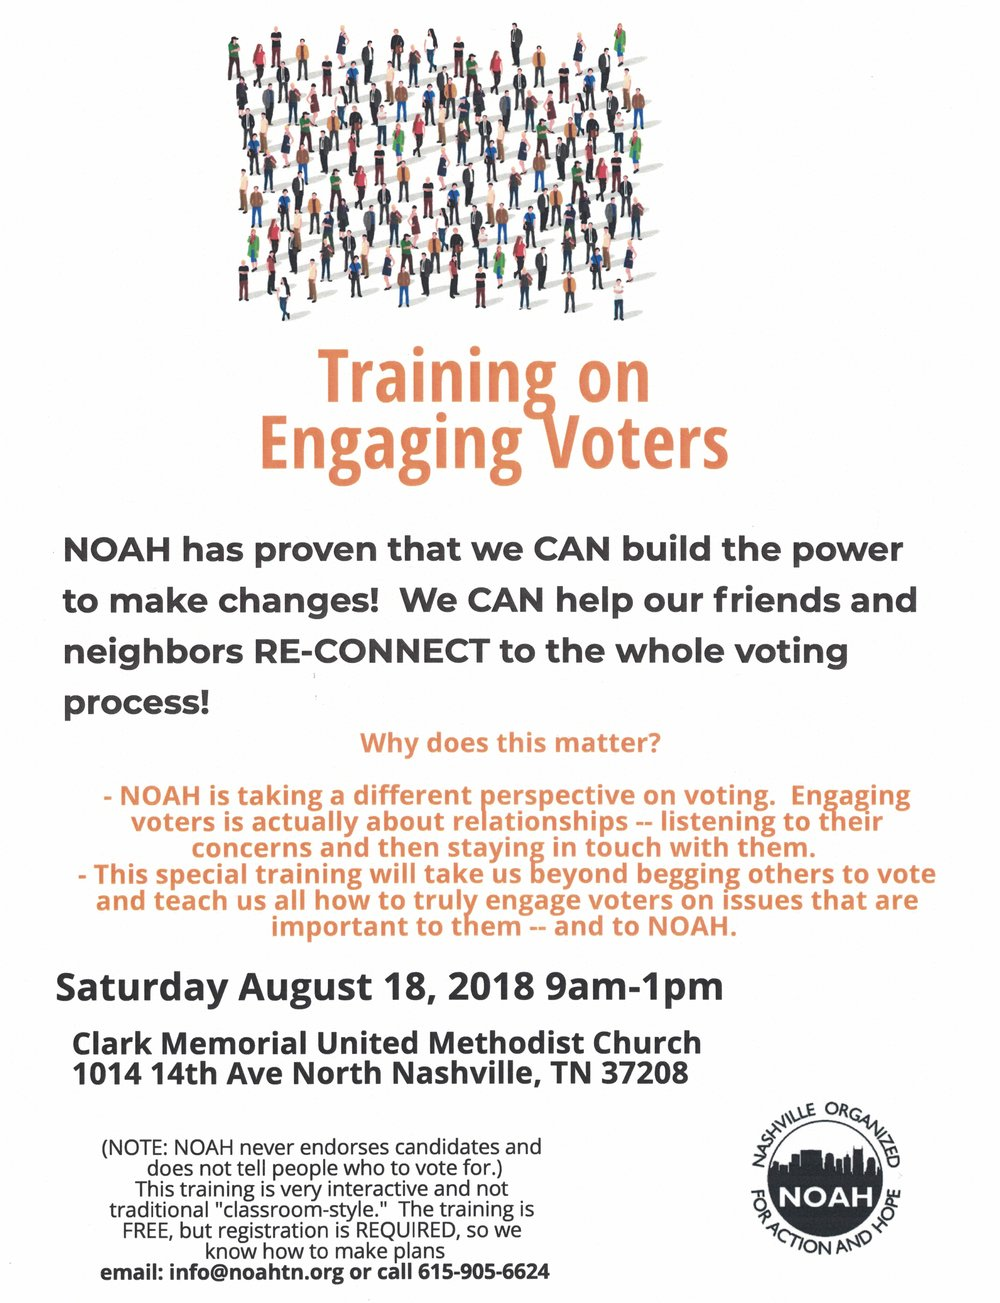 NOAH Training on Engaging Voters08152018.jpg